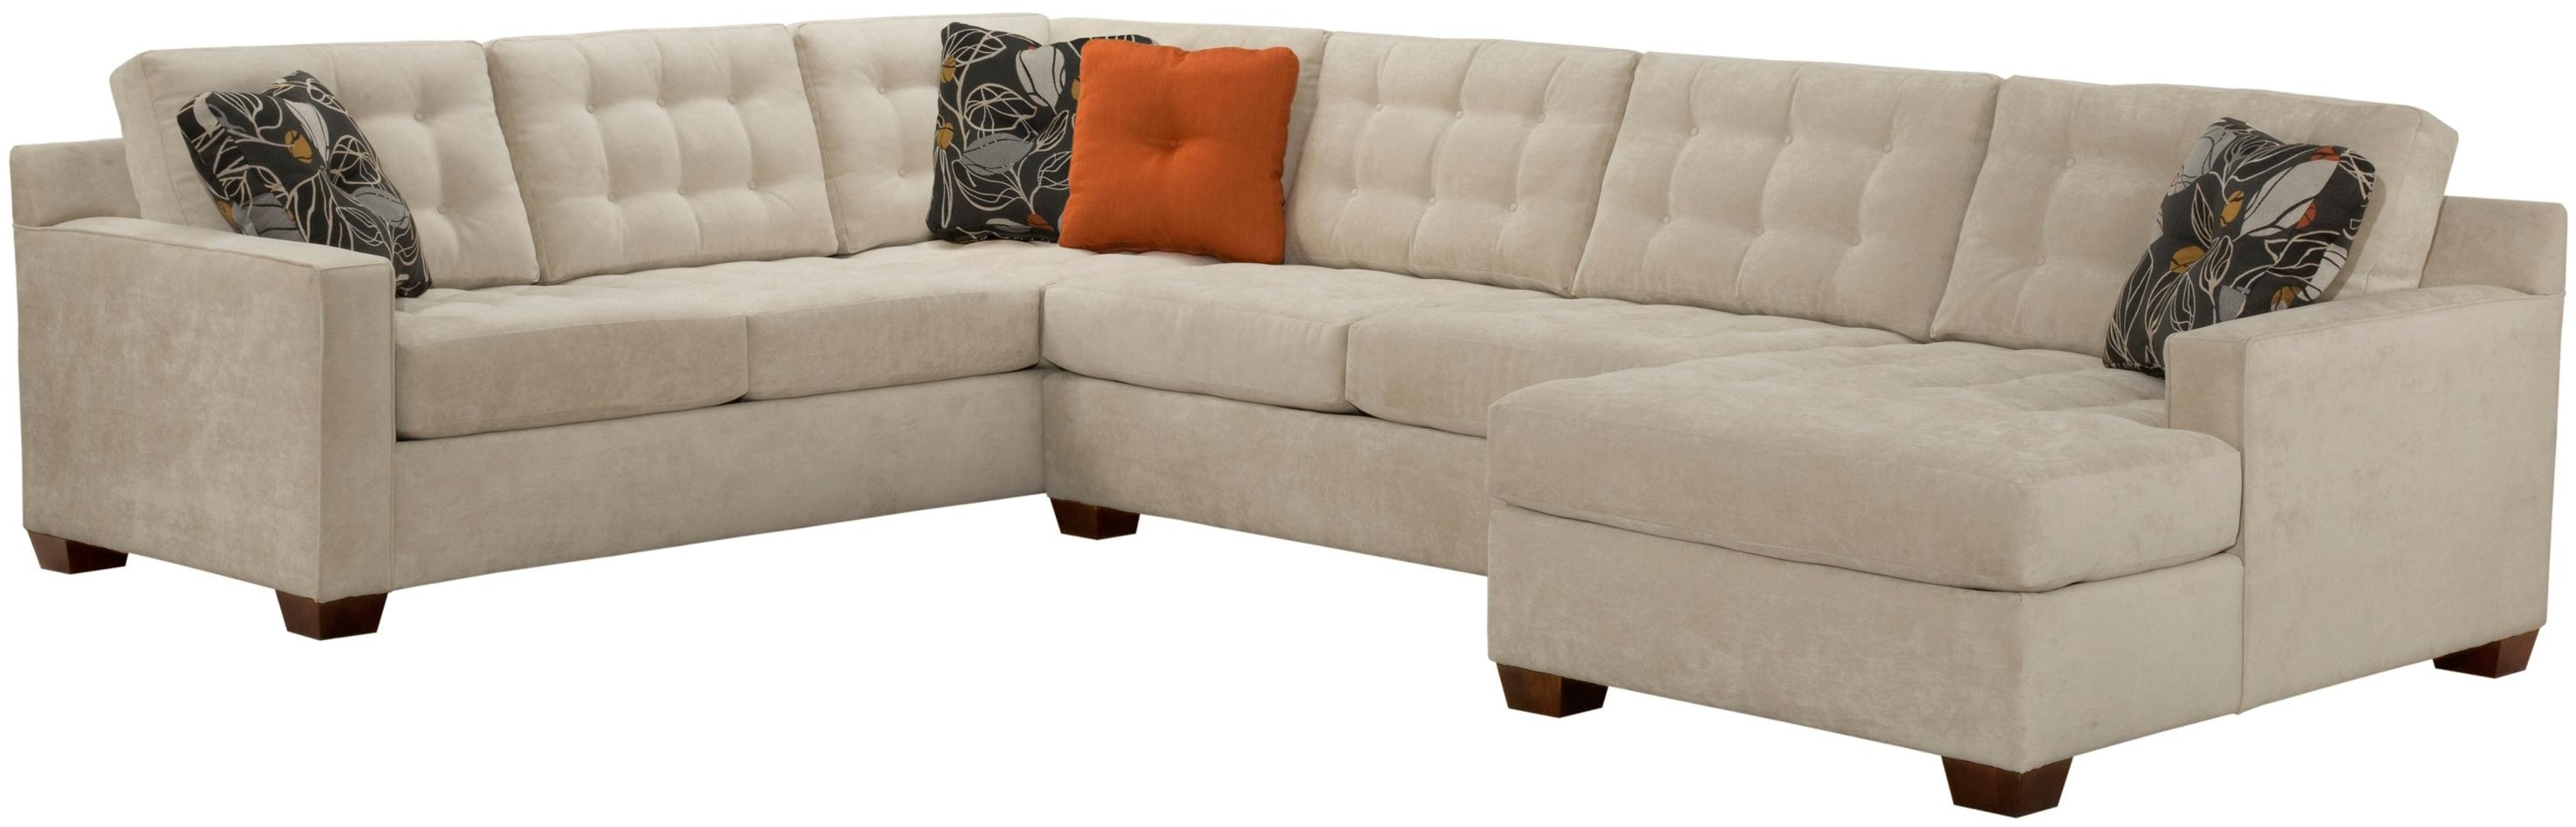 Favorite Broyhill Sectional Sofas Inside Broyhill Furniture Tribeca Contemporary Sectional Sofa With Left (View 9 of 20)